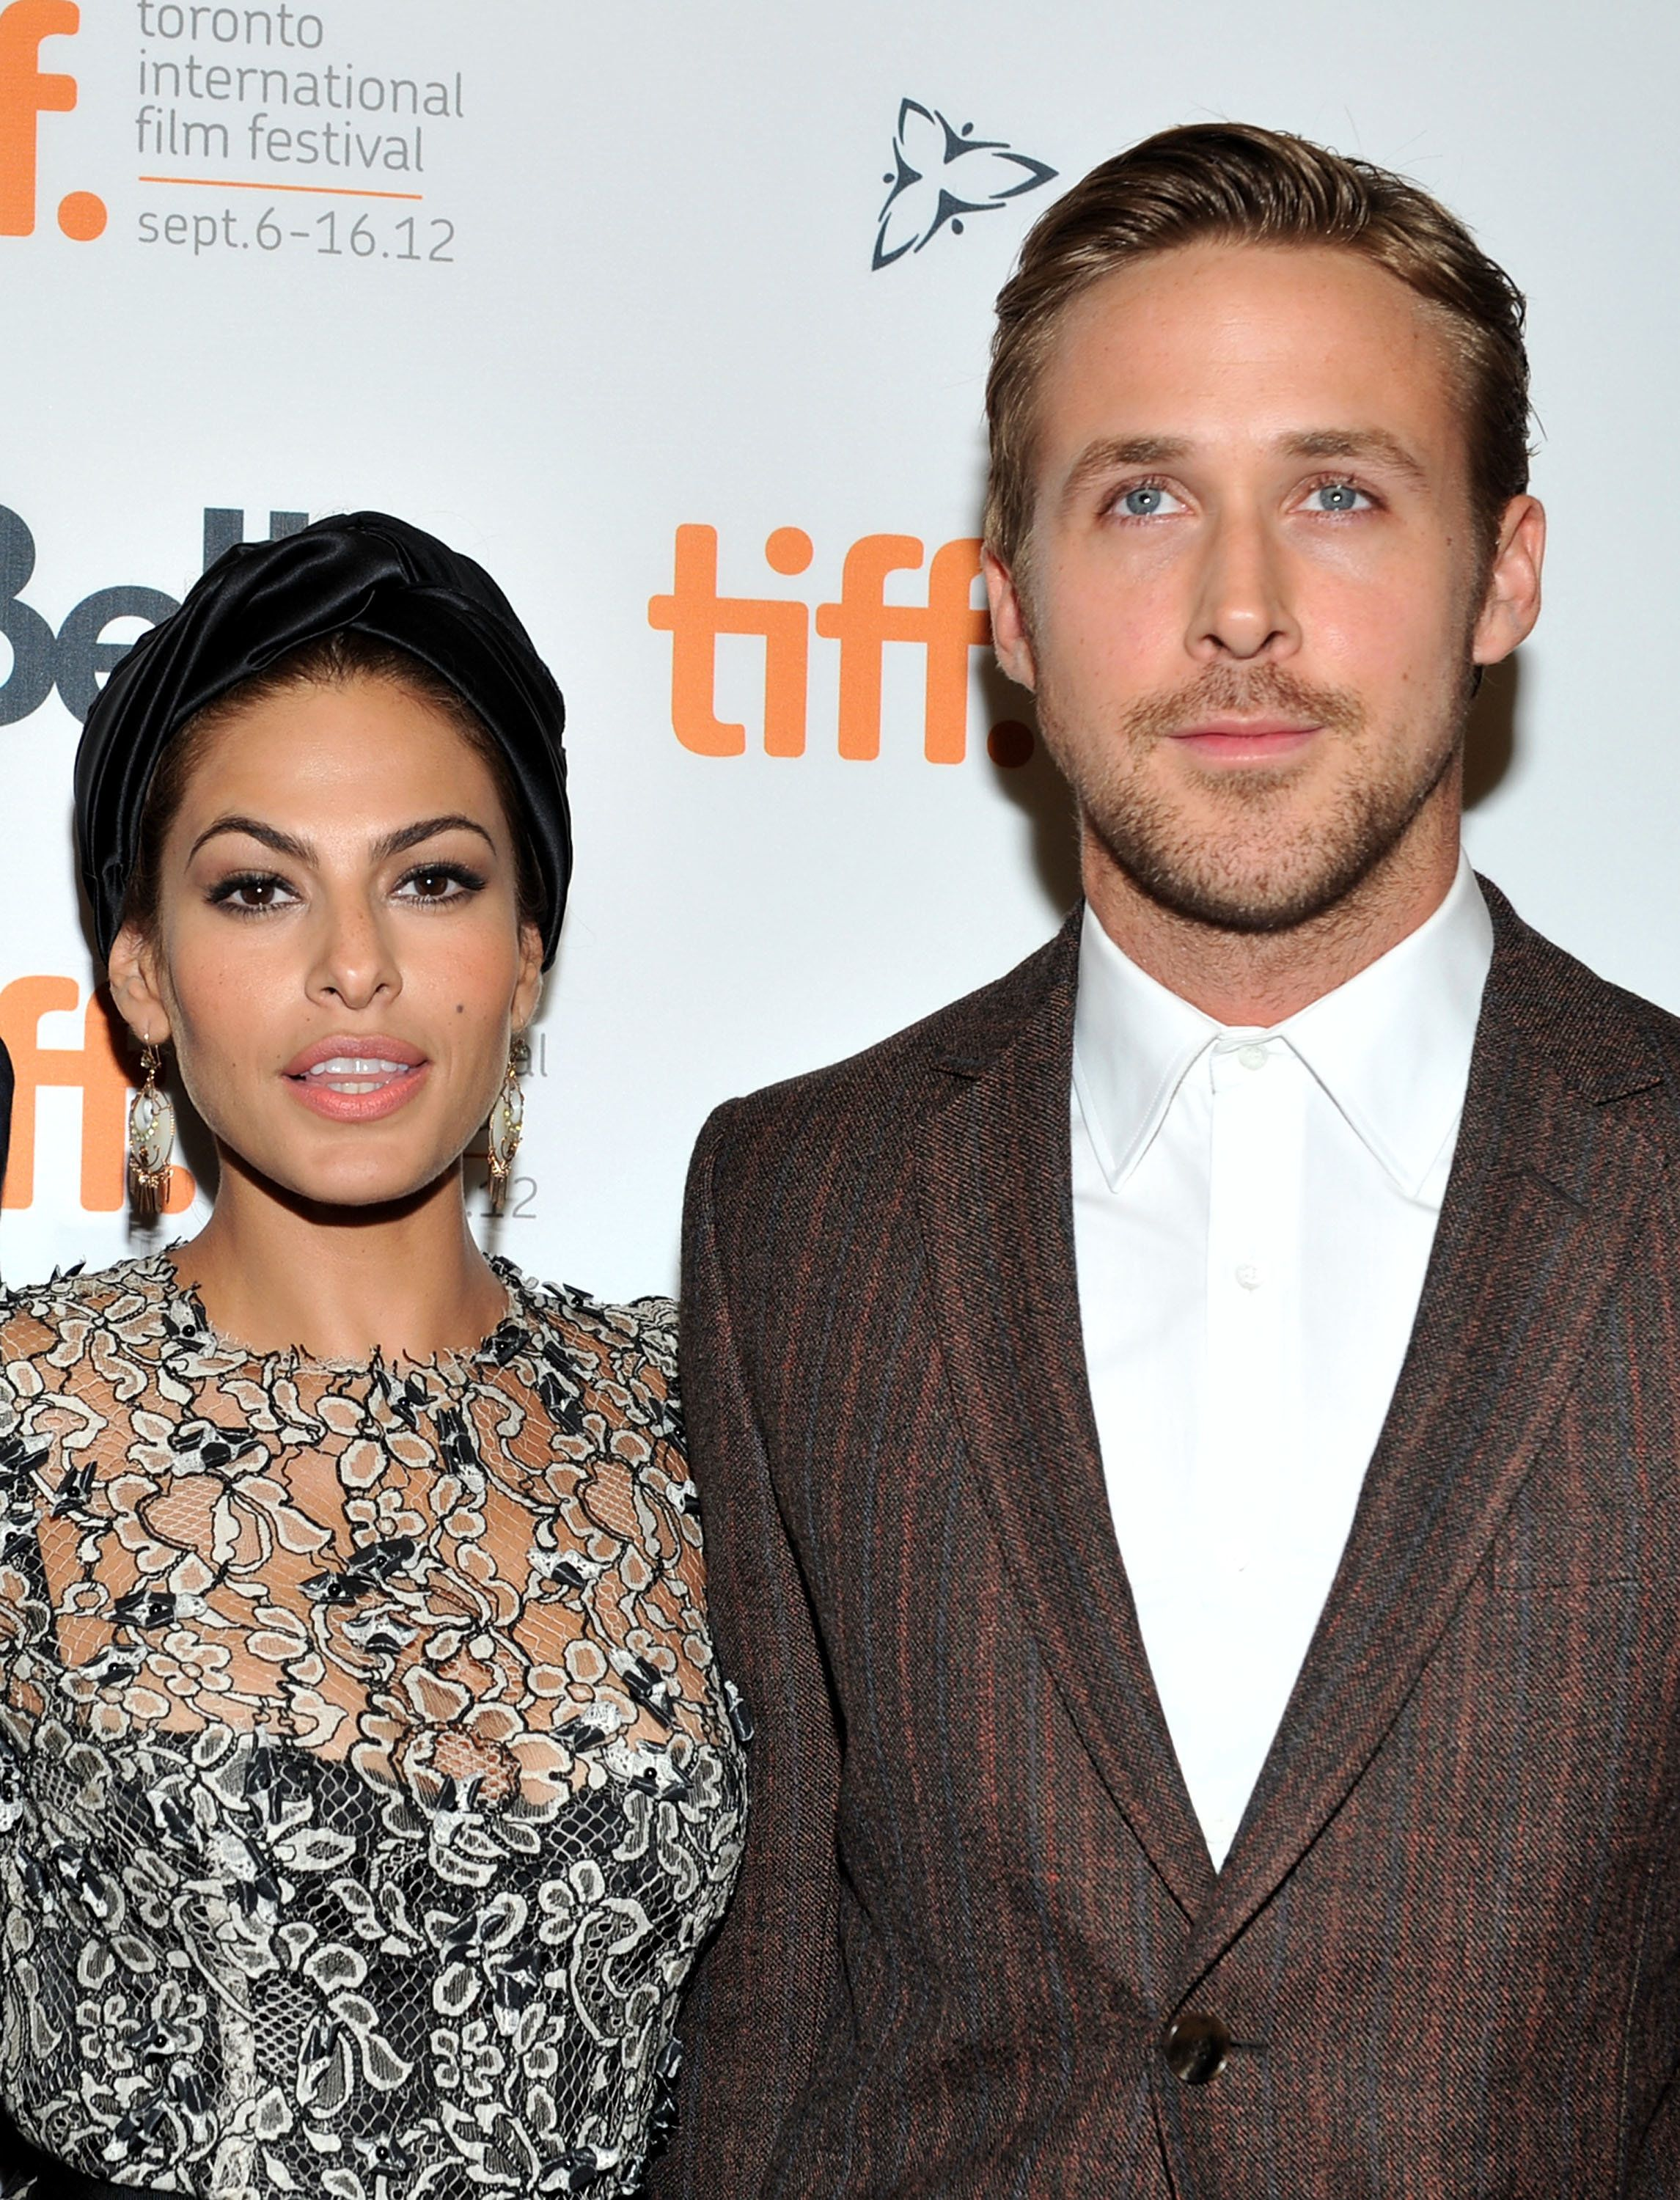 Eva Mendes Opens Up About How She Decided To Be A Mom: 'Ryan Gosling Happened'